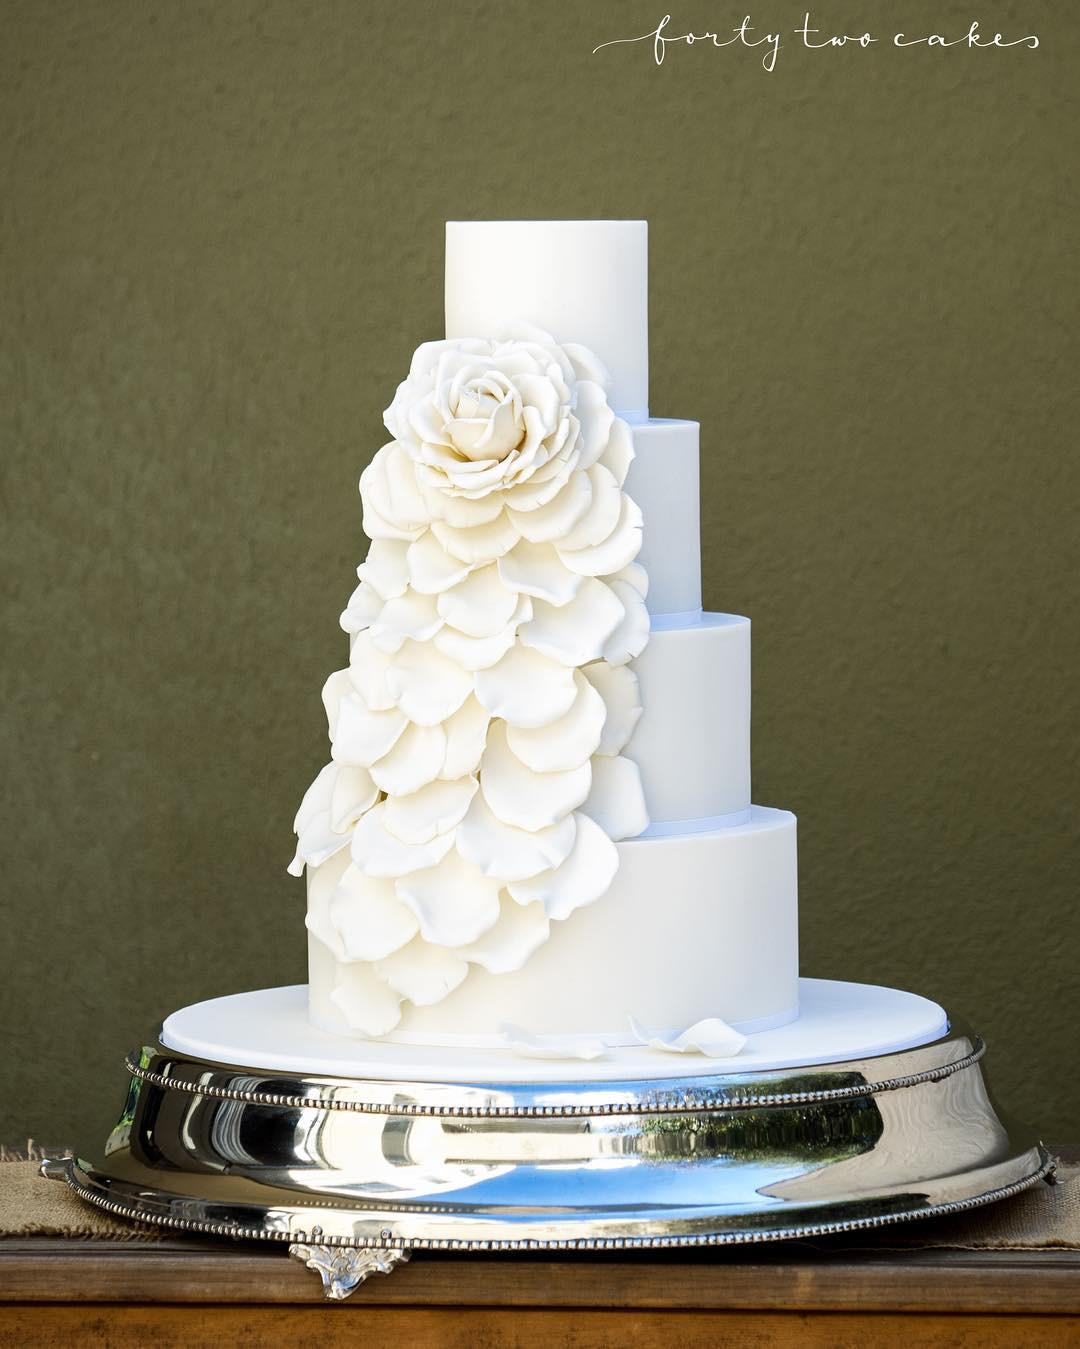 Wedding Cakes Trends  Wedding Cake Trends for 2018